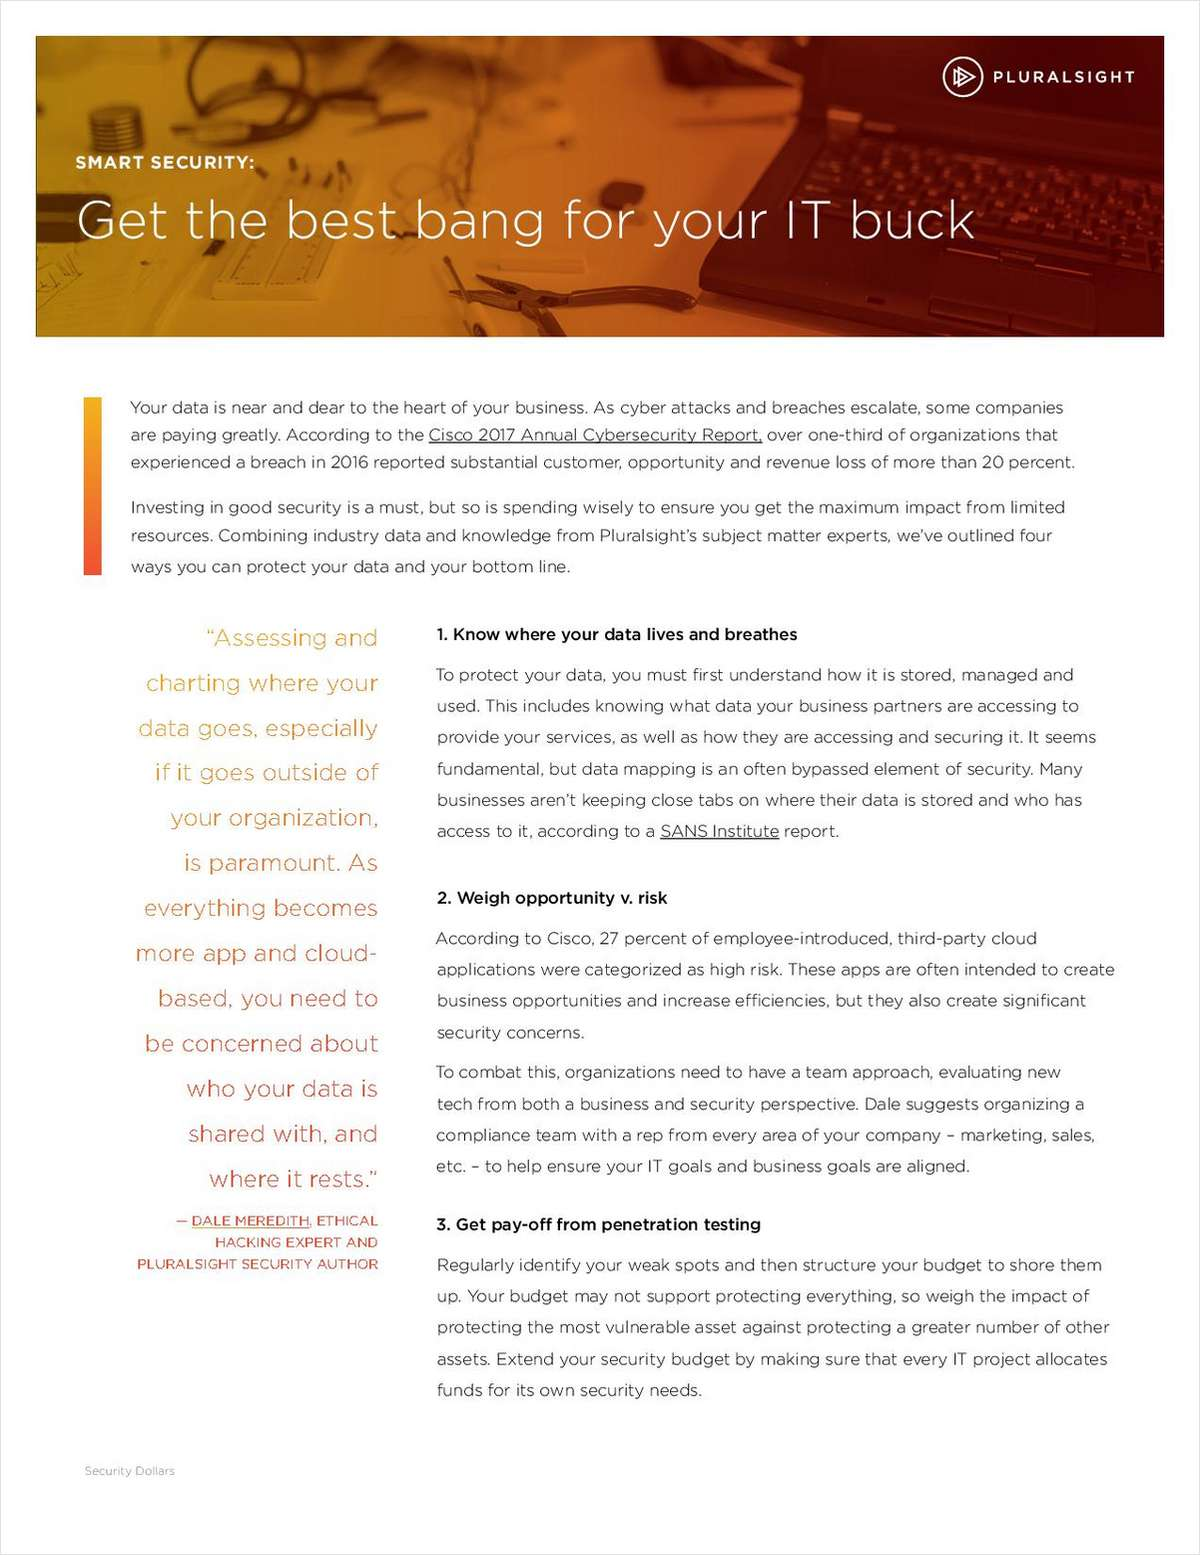 Smart Security: Get the Best Bang for Your IT Buck